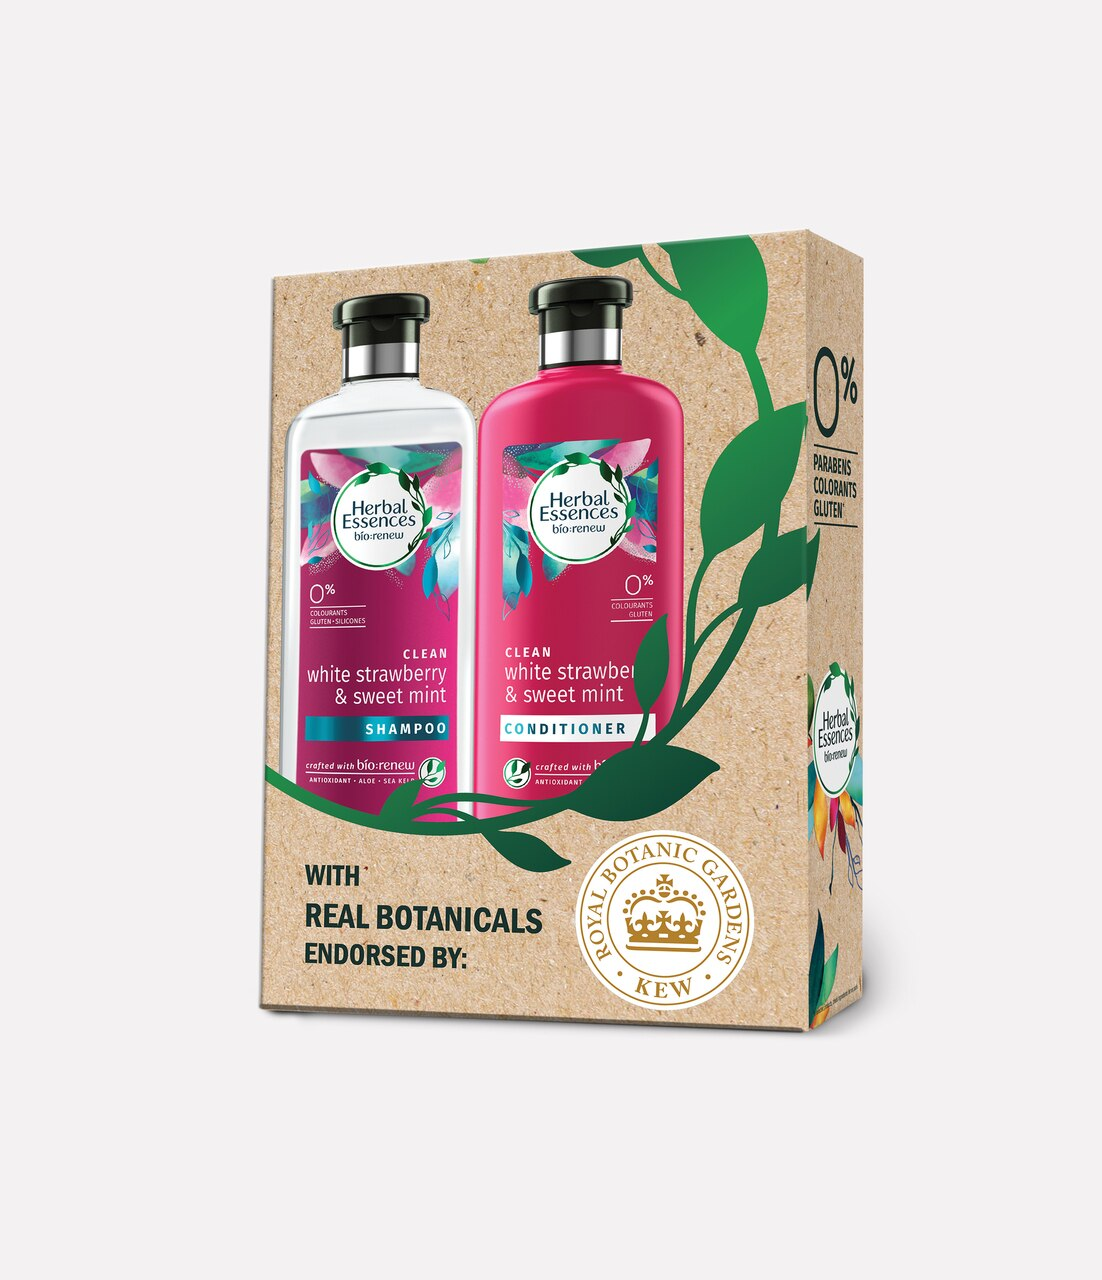 Herbal Essences Bio:Renew White Strawberry & Sweet Mint Shampoo and Conditioner Combo Box_400 ml + 400 ml